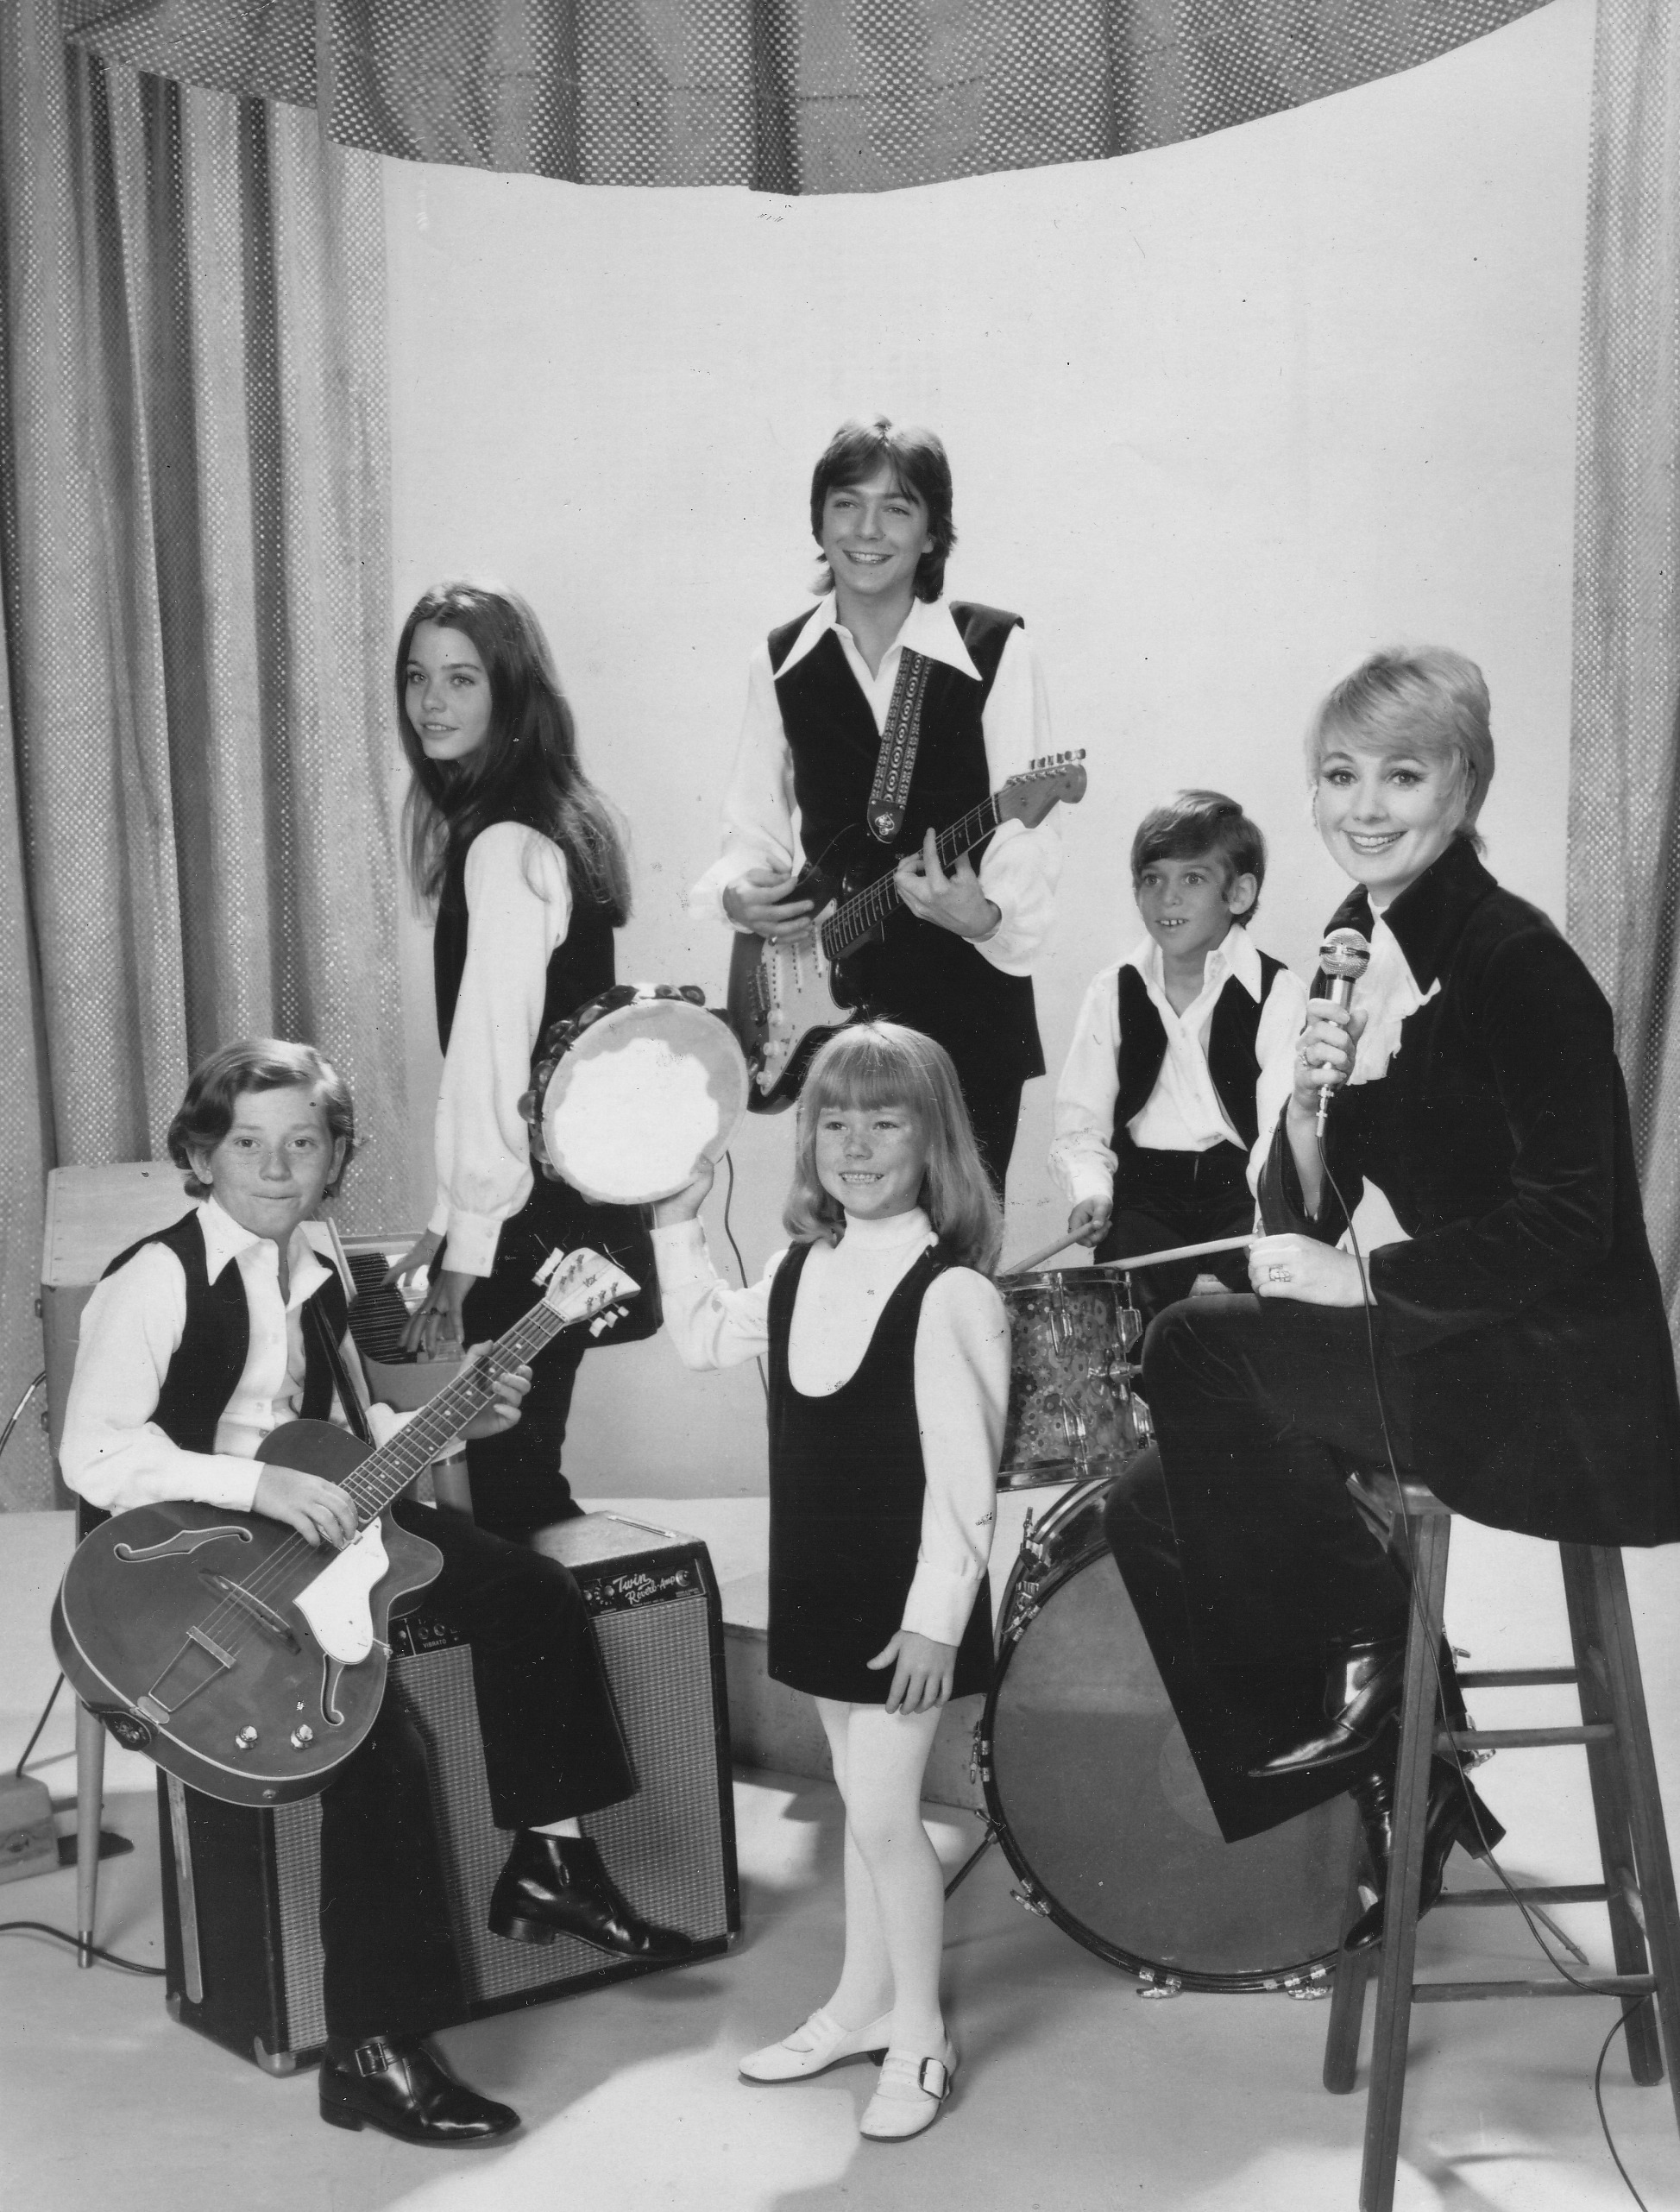 20161206 Google images labeled for reuse The_Partridge_Family_Cast_1970_No_2